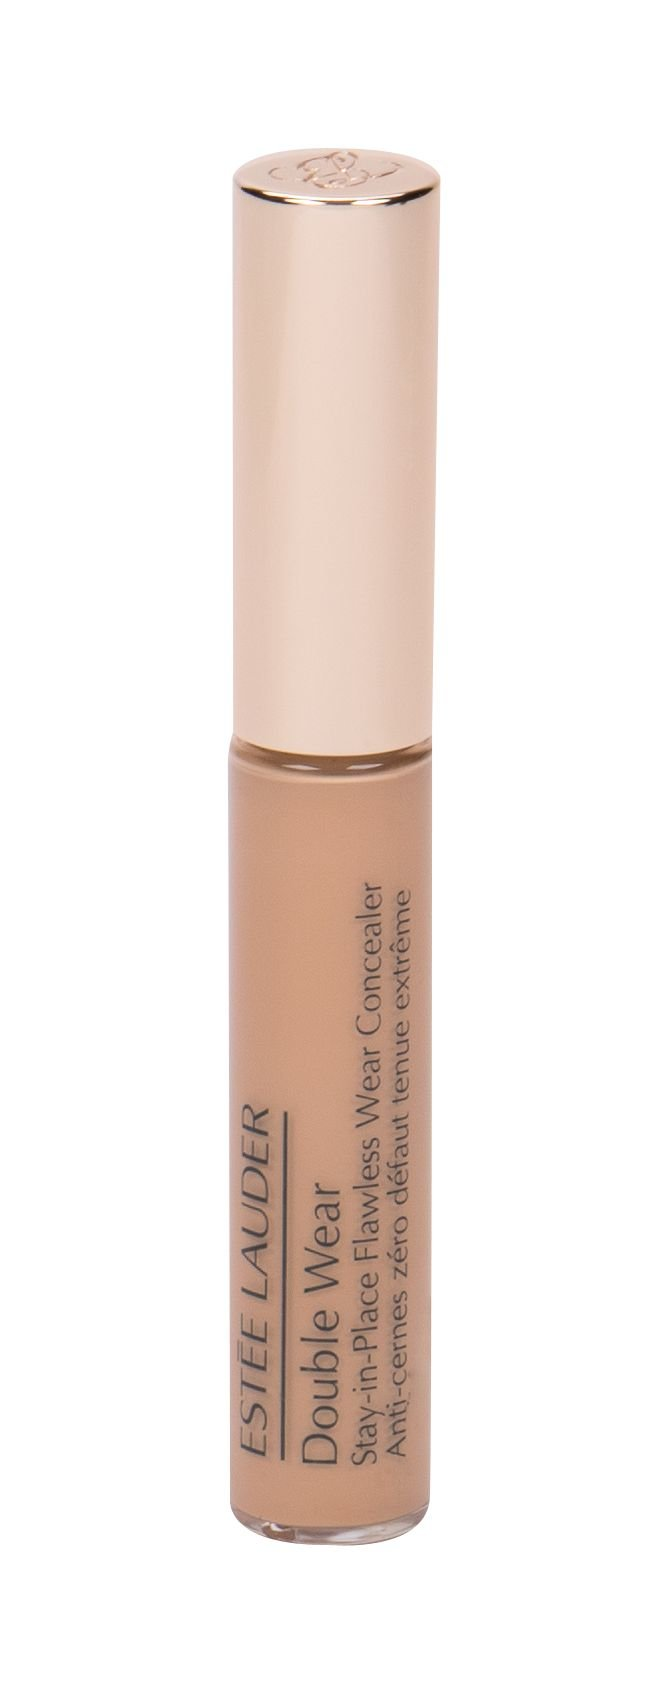 Estée Lauder Double Wear Corrector 7ml 2N Light Medium (Neutral)